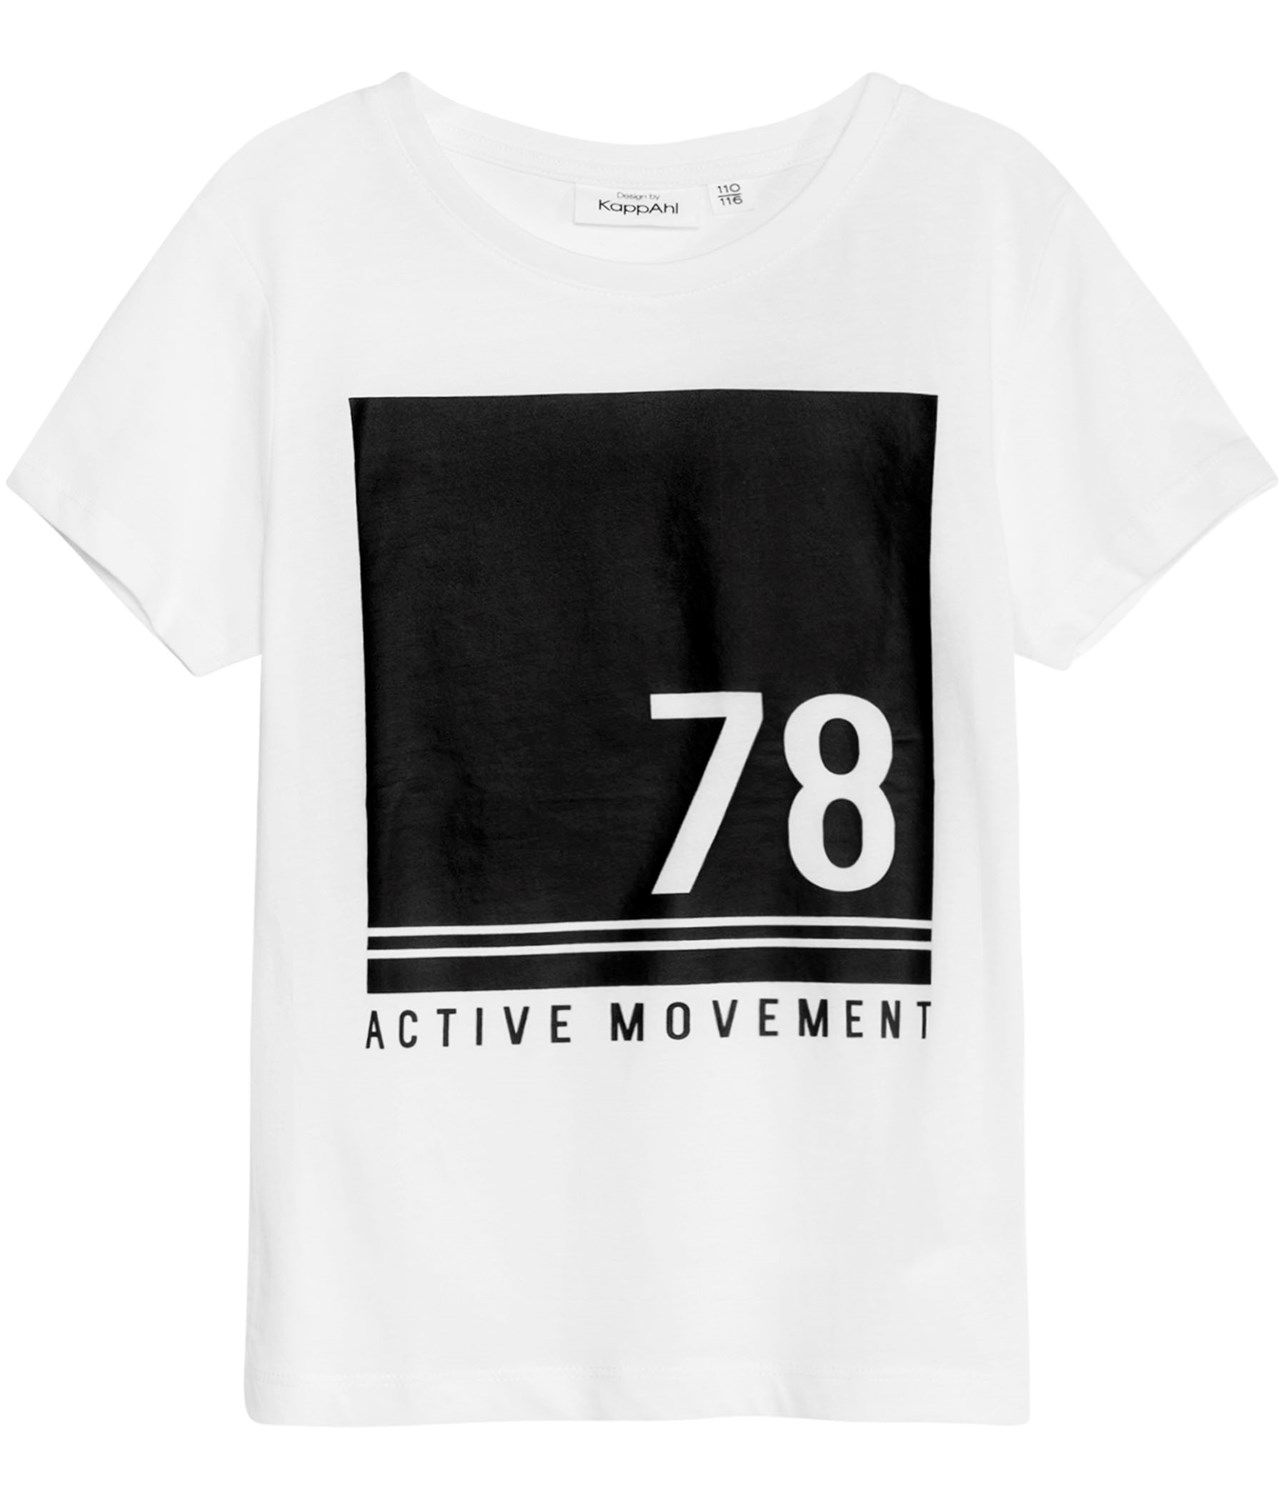 6462411aa8df T Shirt Med Tryck Barn Online - Renault Occasion Castelnaudary